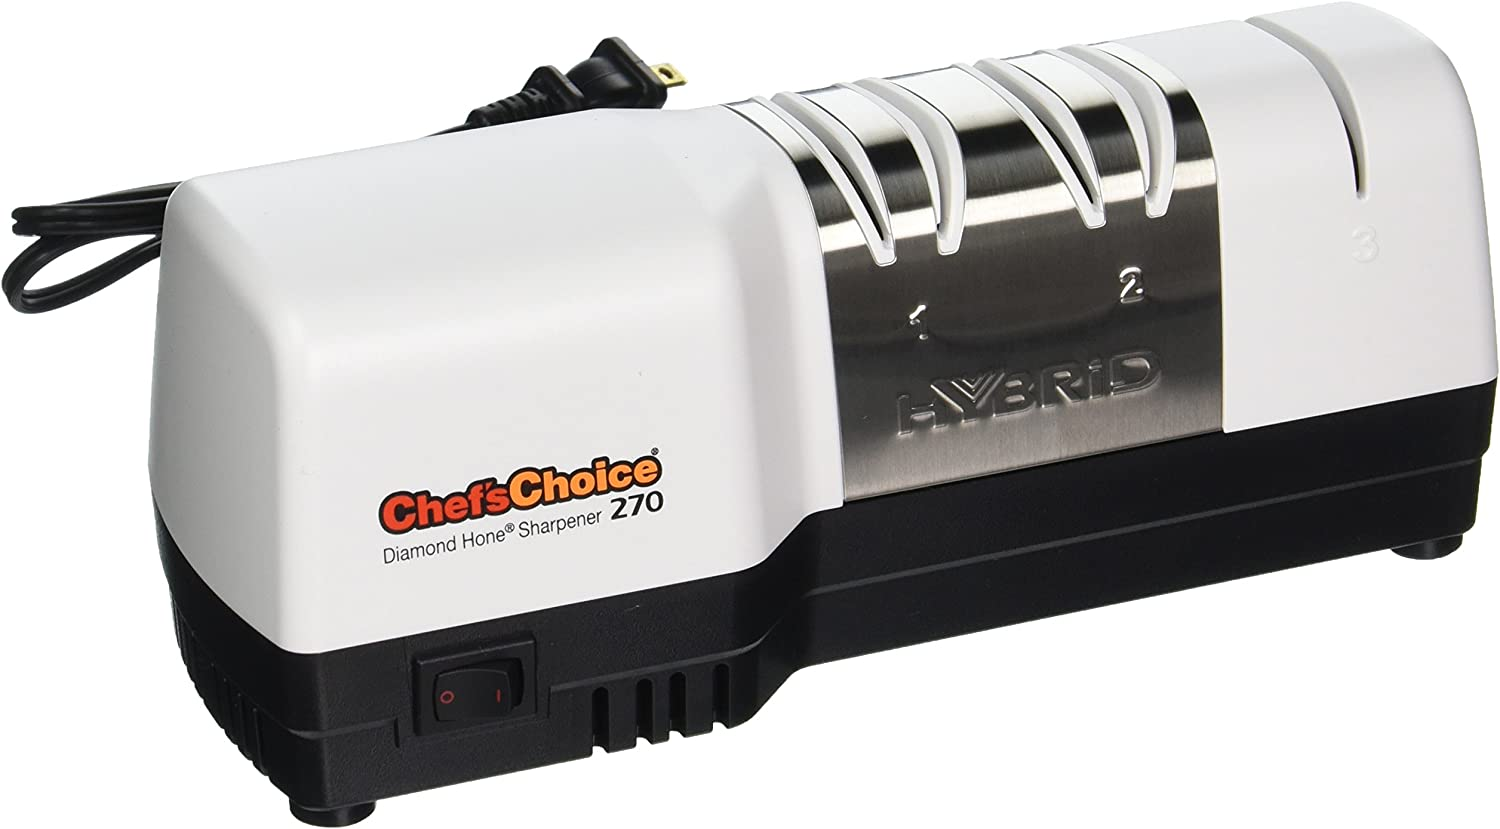 Chef sChoice 270 Hybrid Diamond Hone Knife Sharpener Combines Electric and Manual Sharpening for Straight and Serrated 20-Degree Knives Made in USA, 3-Stage, White